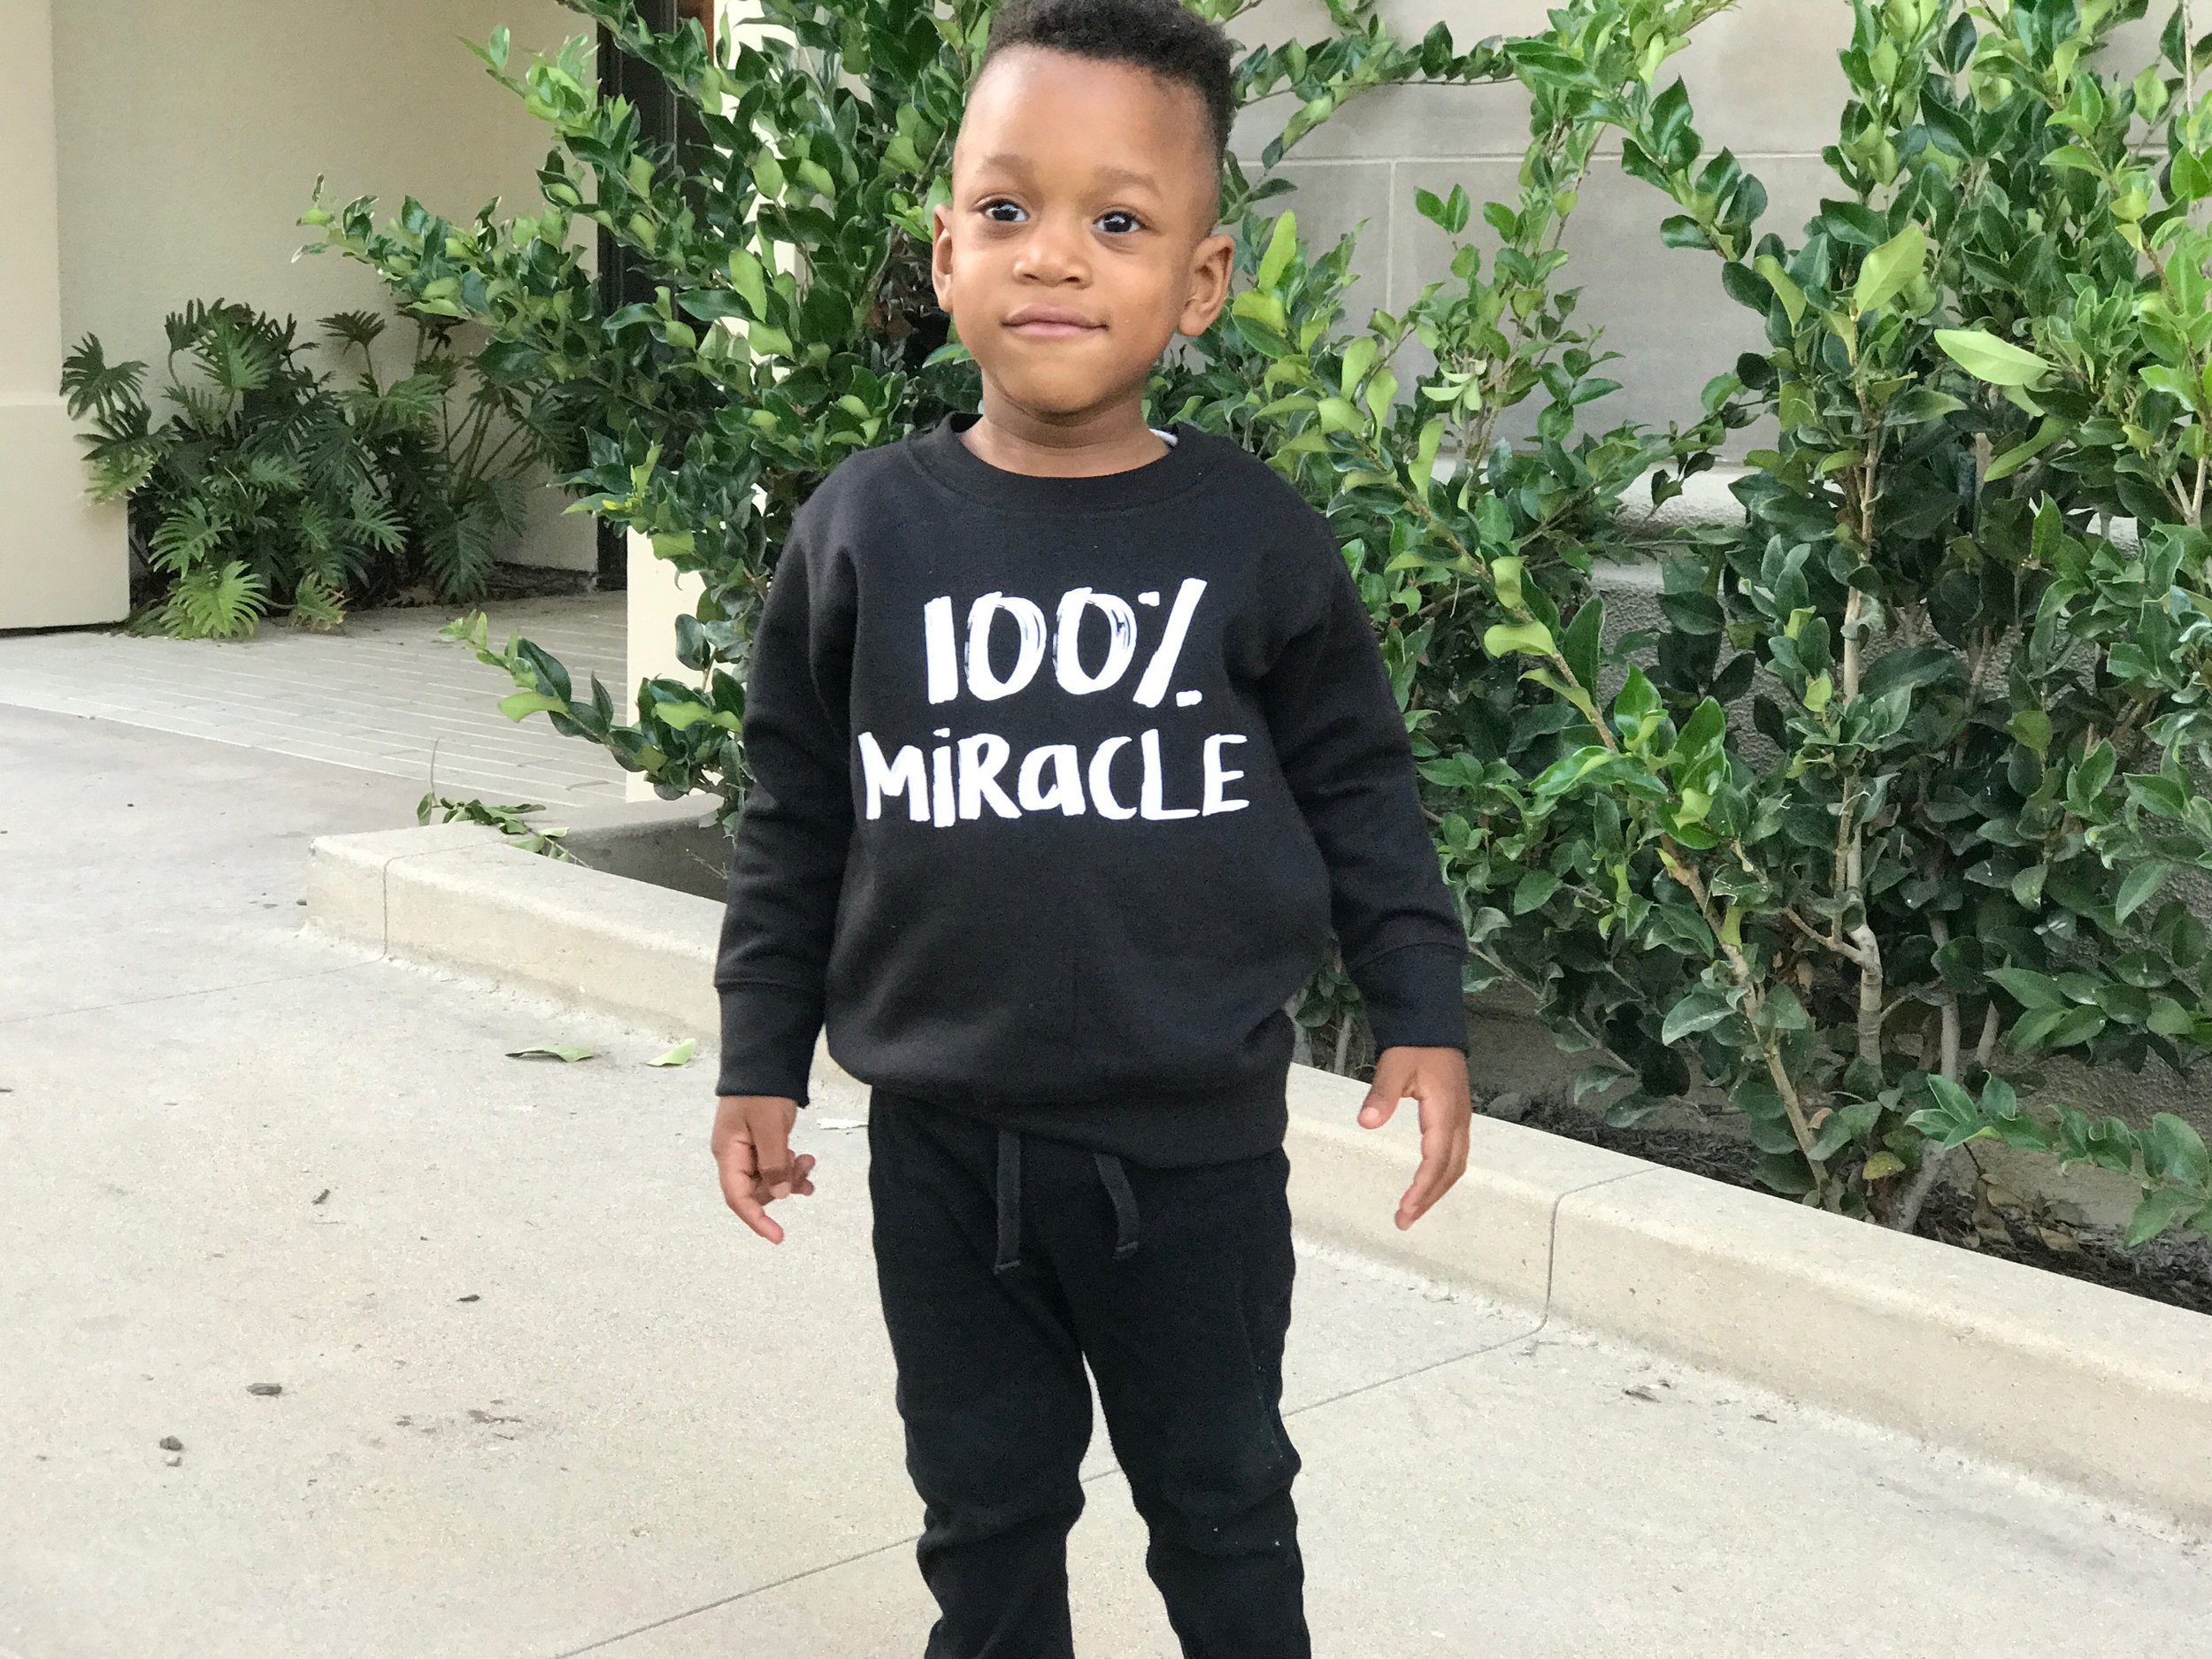 100% Miracle Sweater is from  Halos & Miracles